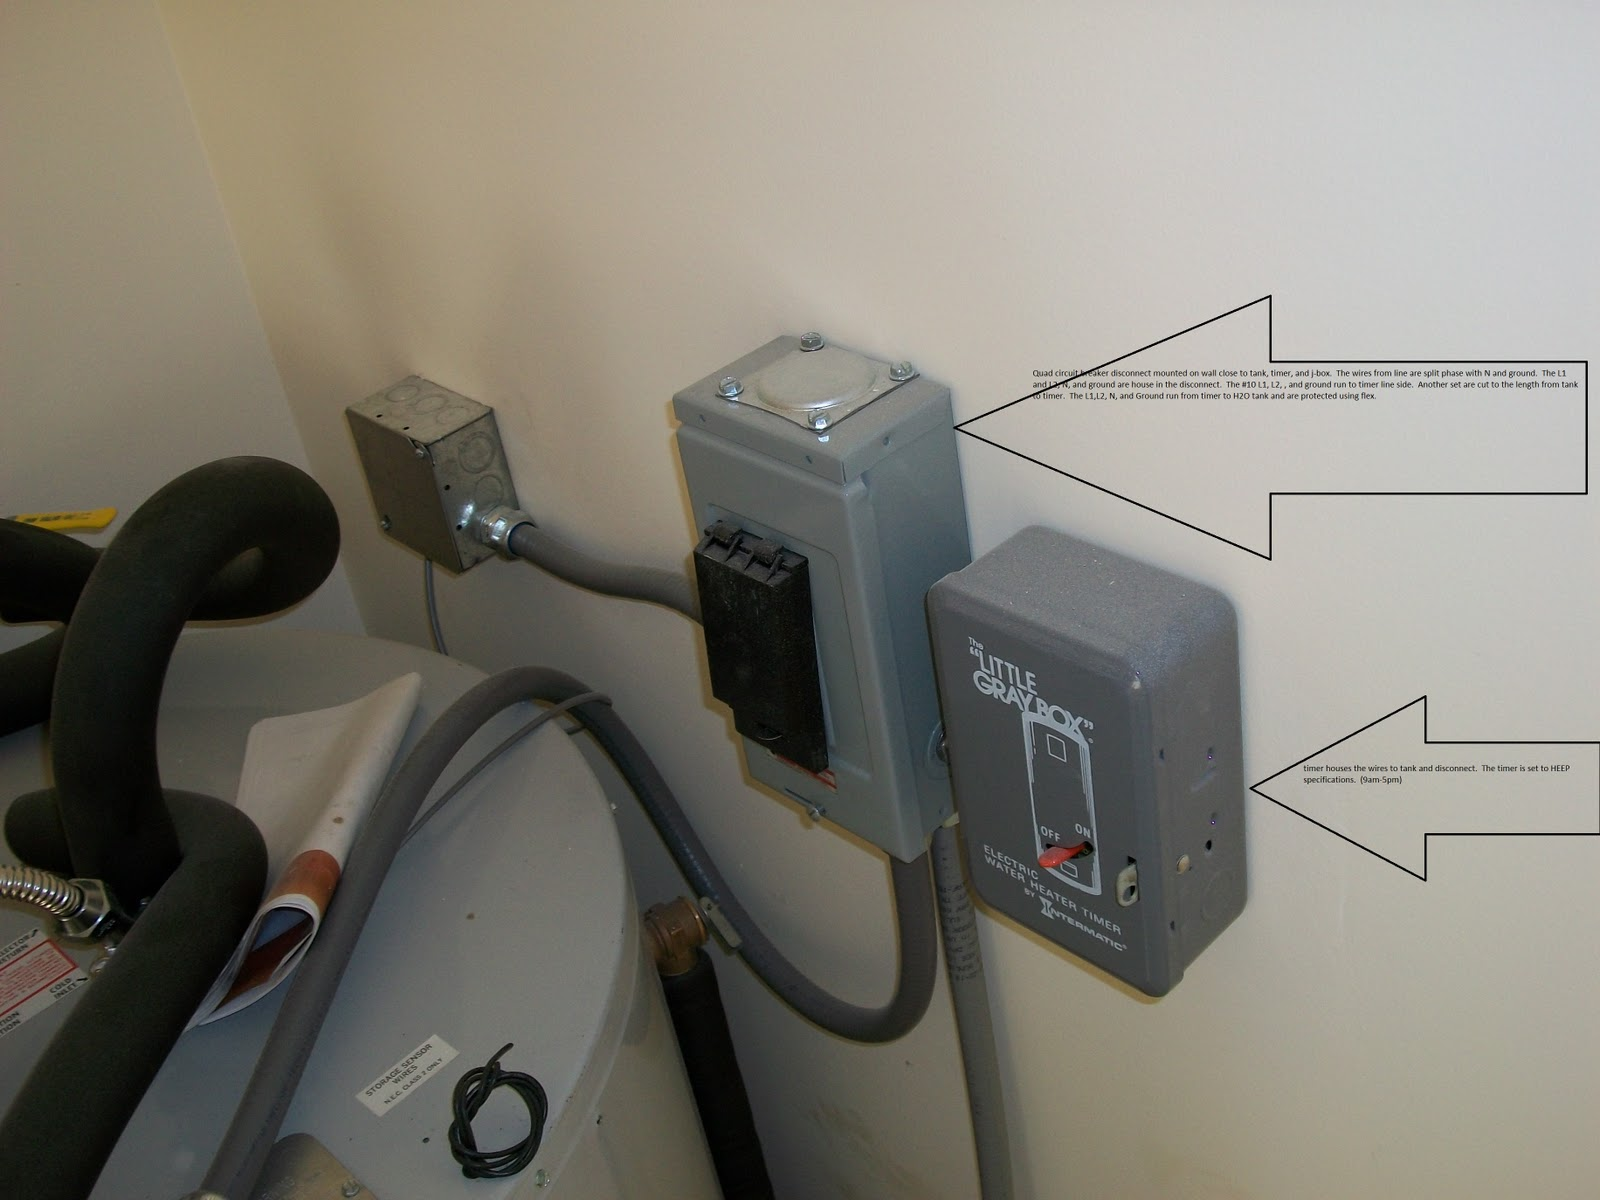 pv installation wiring diagram images the worlds follow diagram and ask questions on solar pv system wiring